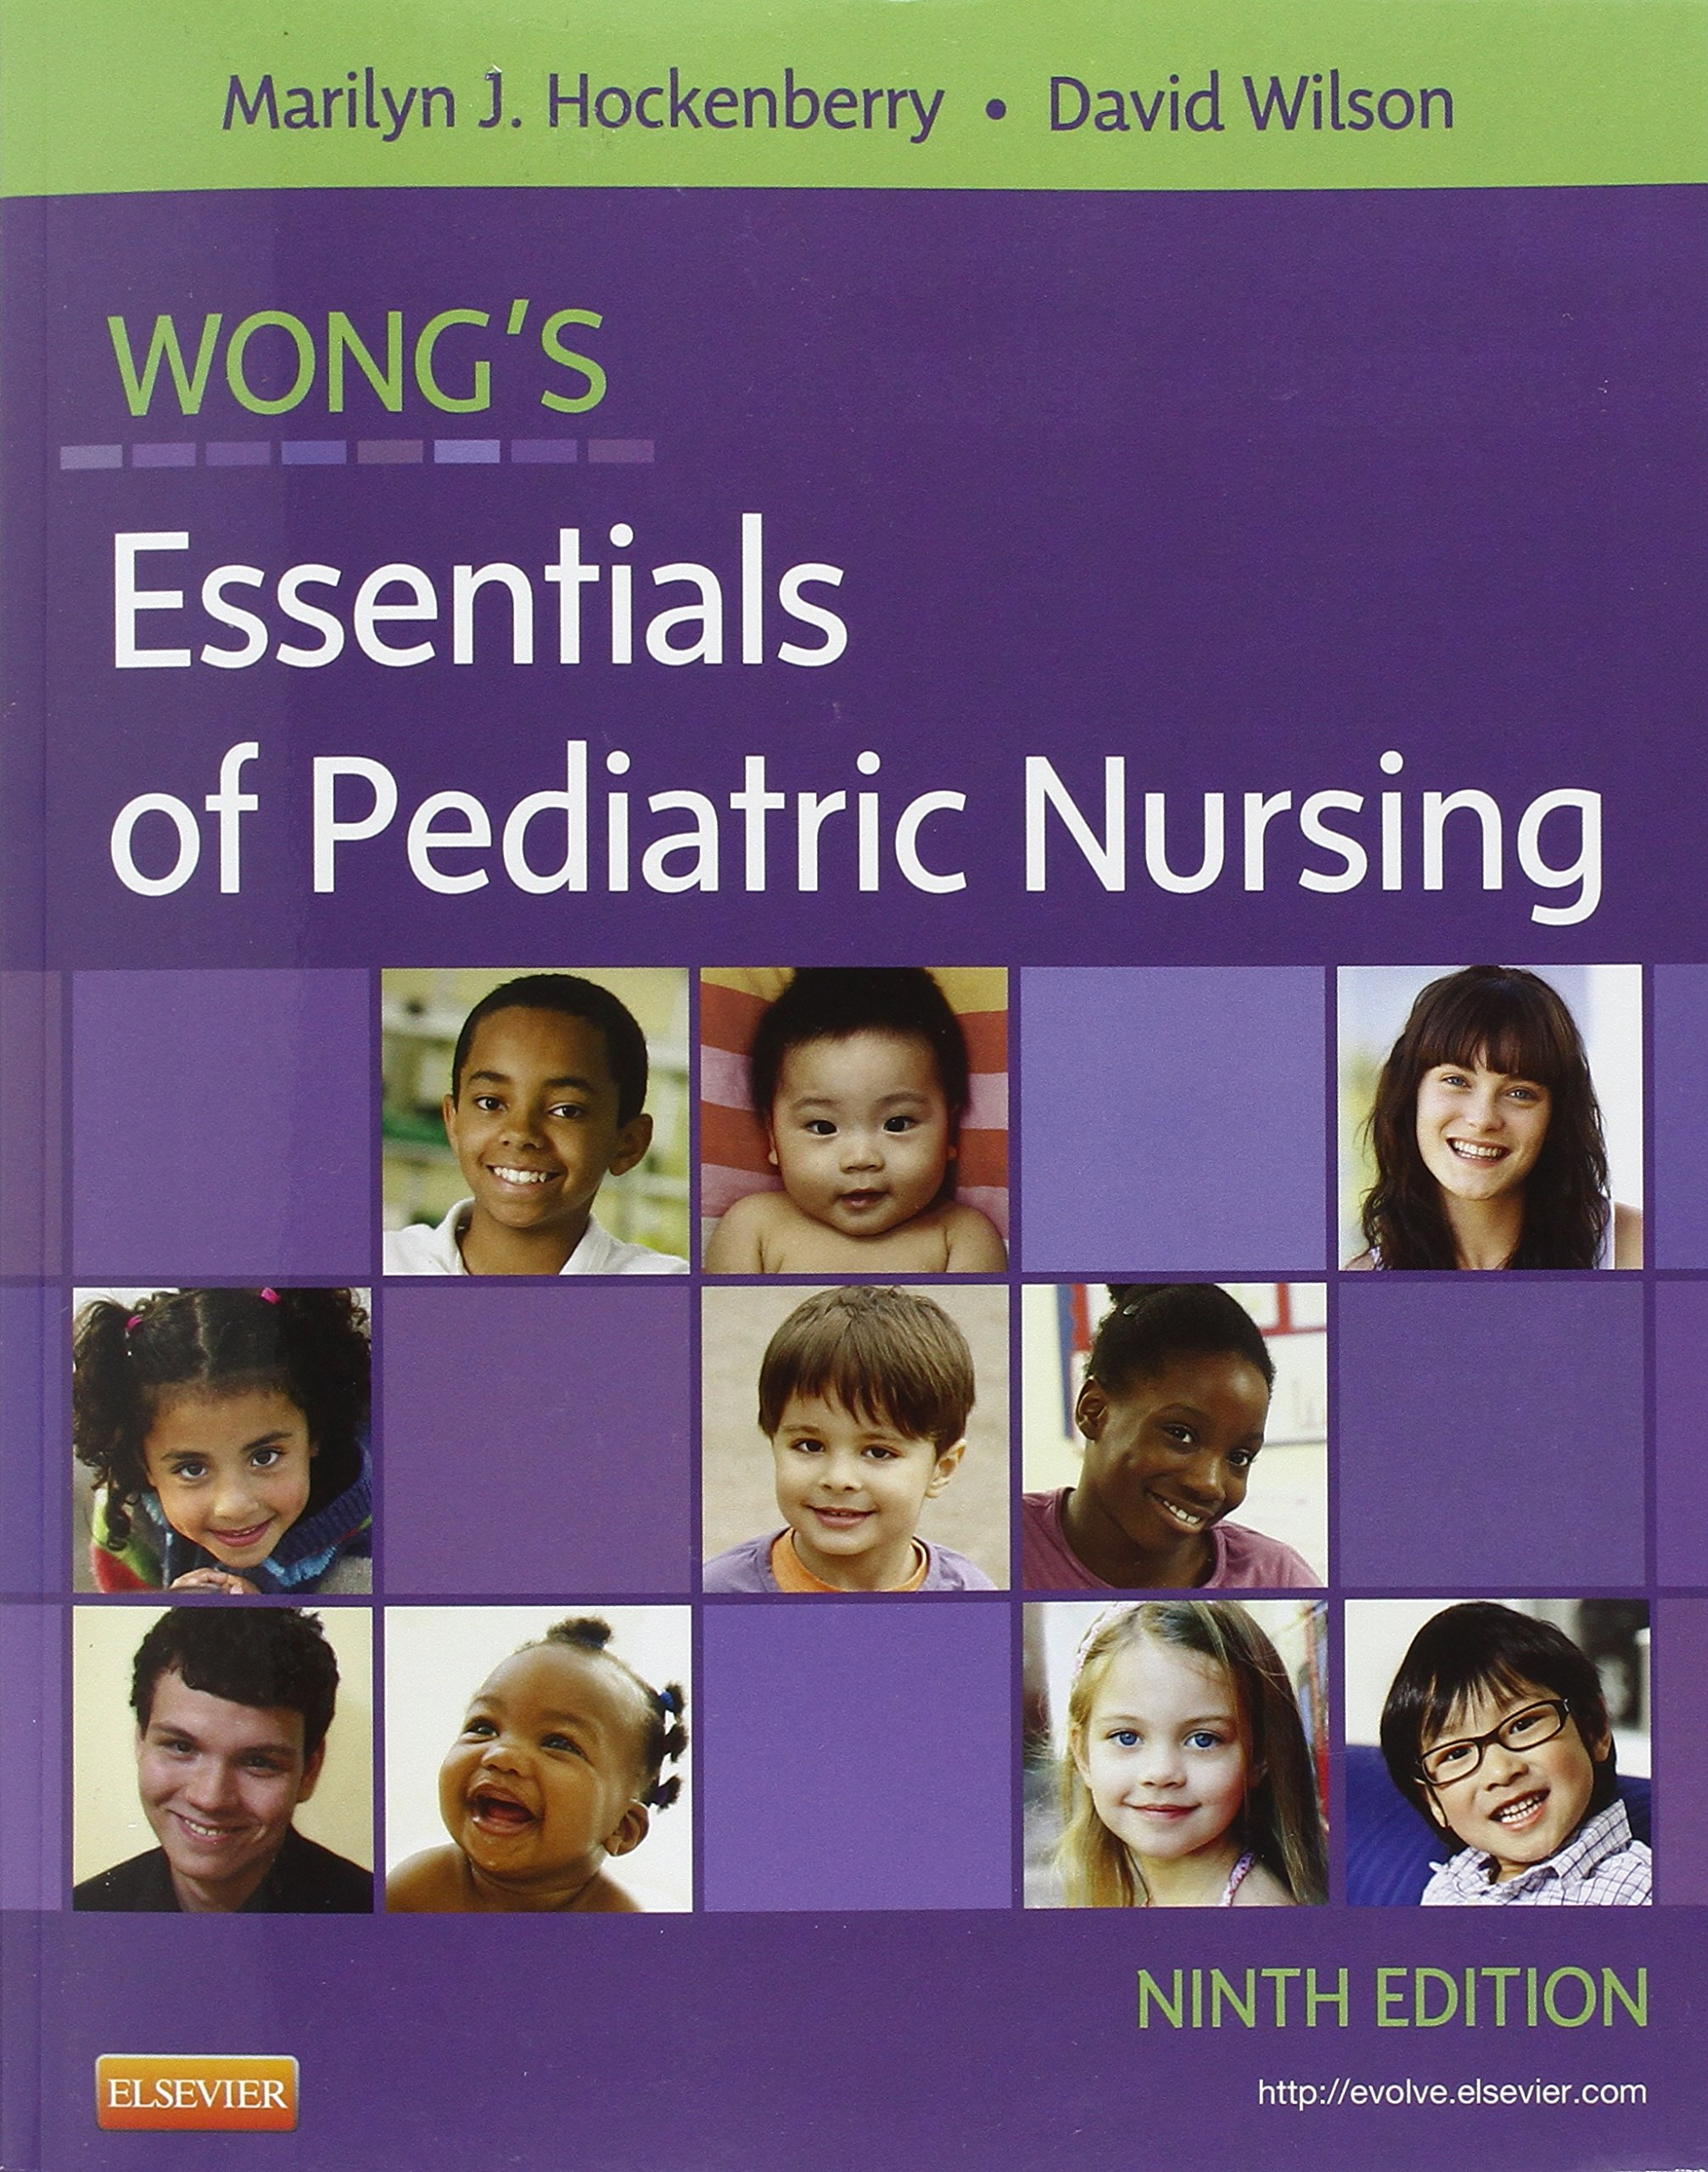 Buy Wong's Essentials of Pediatric Nursing, 9e Book Online at Low Prices in  India | Wong's Essentials of Pediatric Nursing, 9e Reviews & Ratings -  Amazon.in